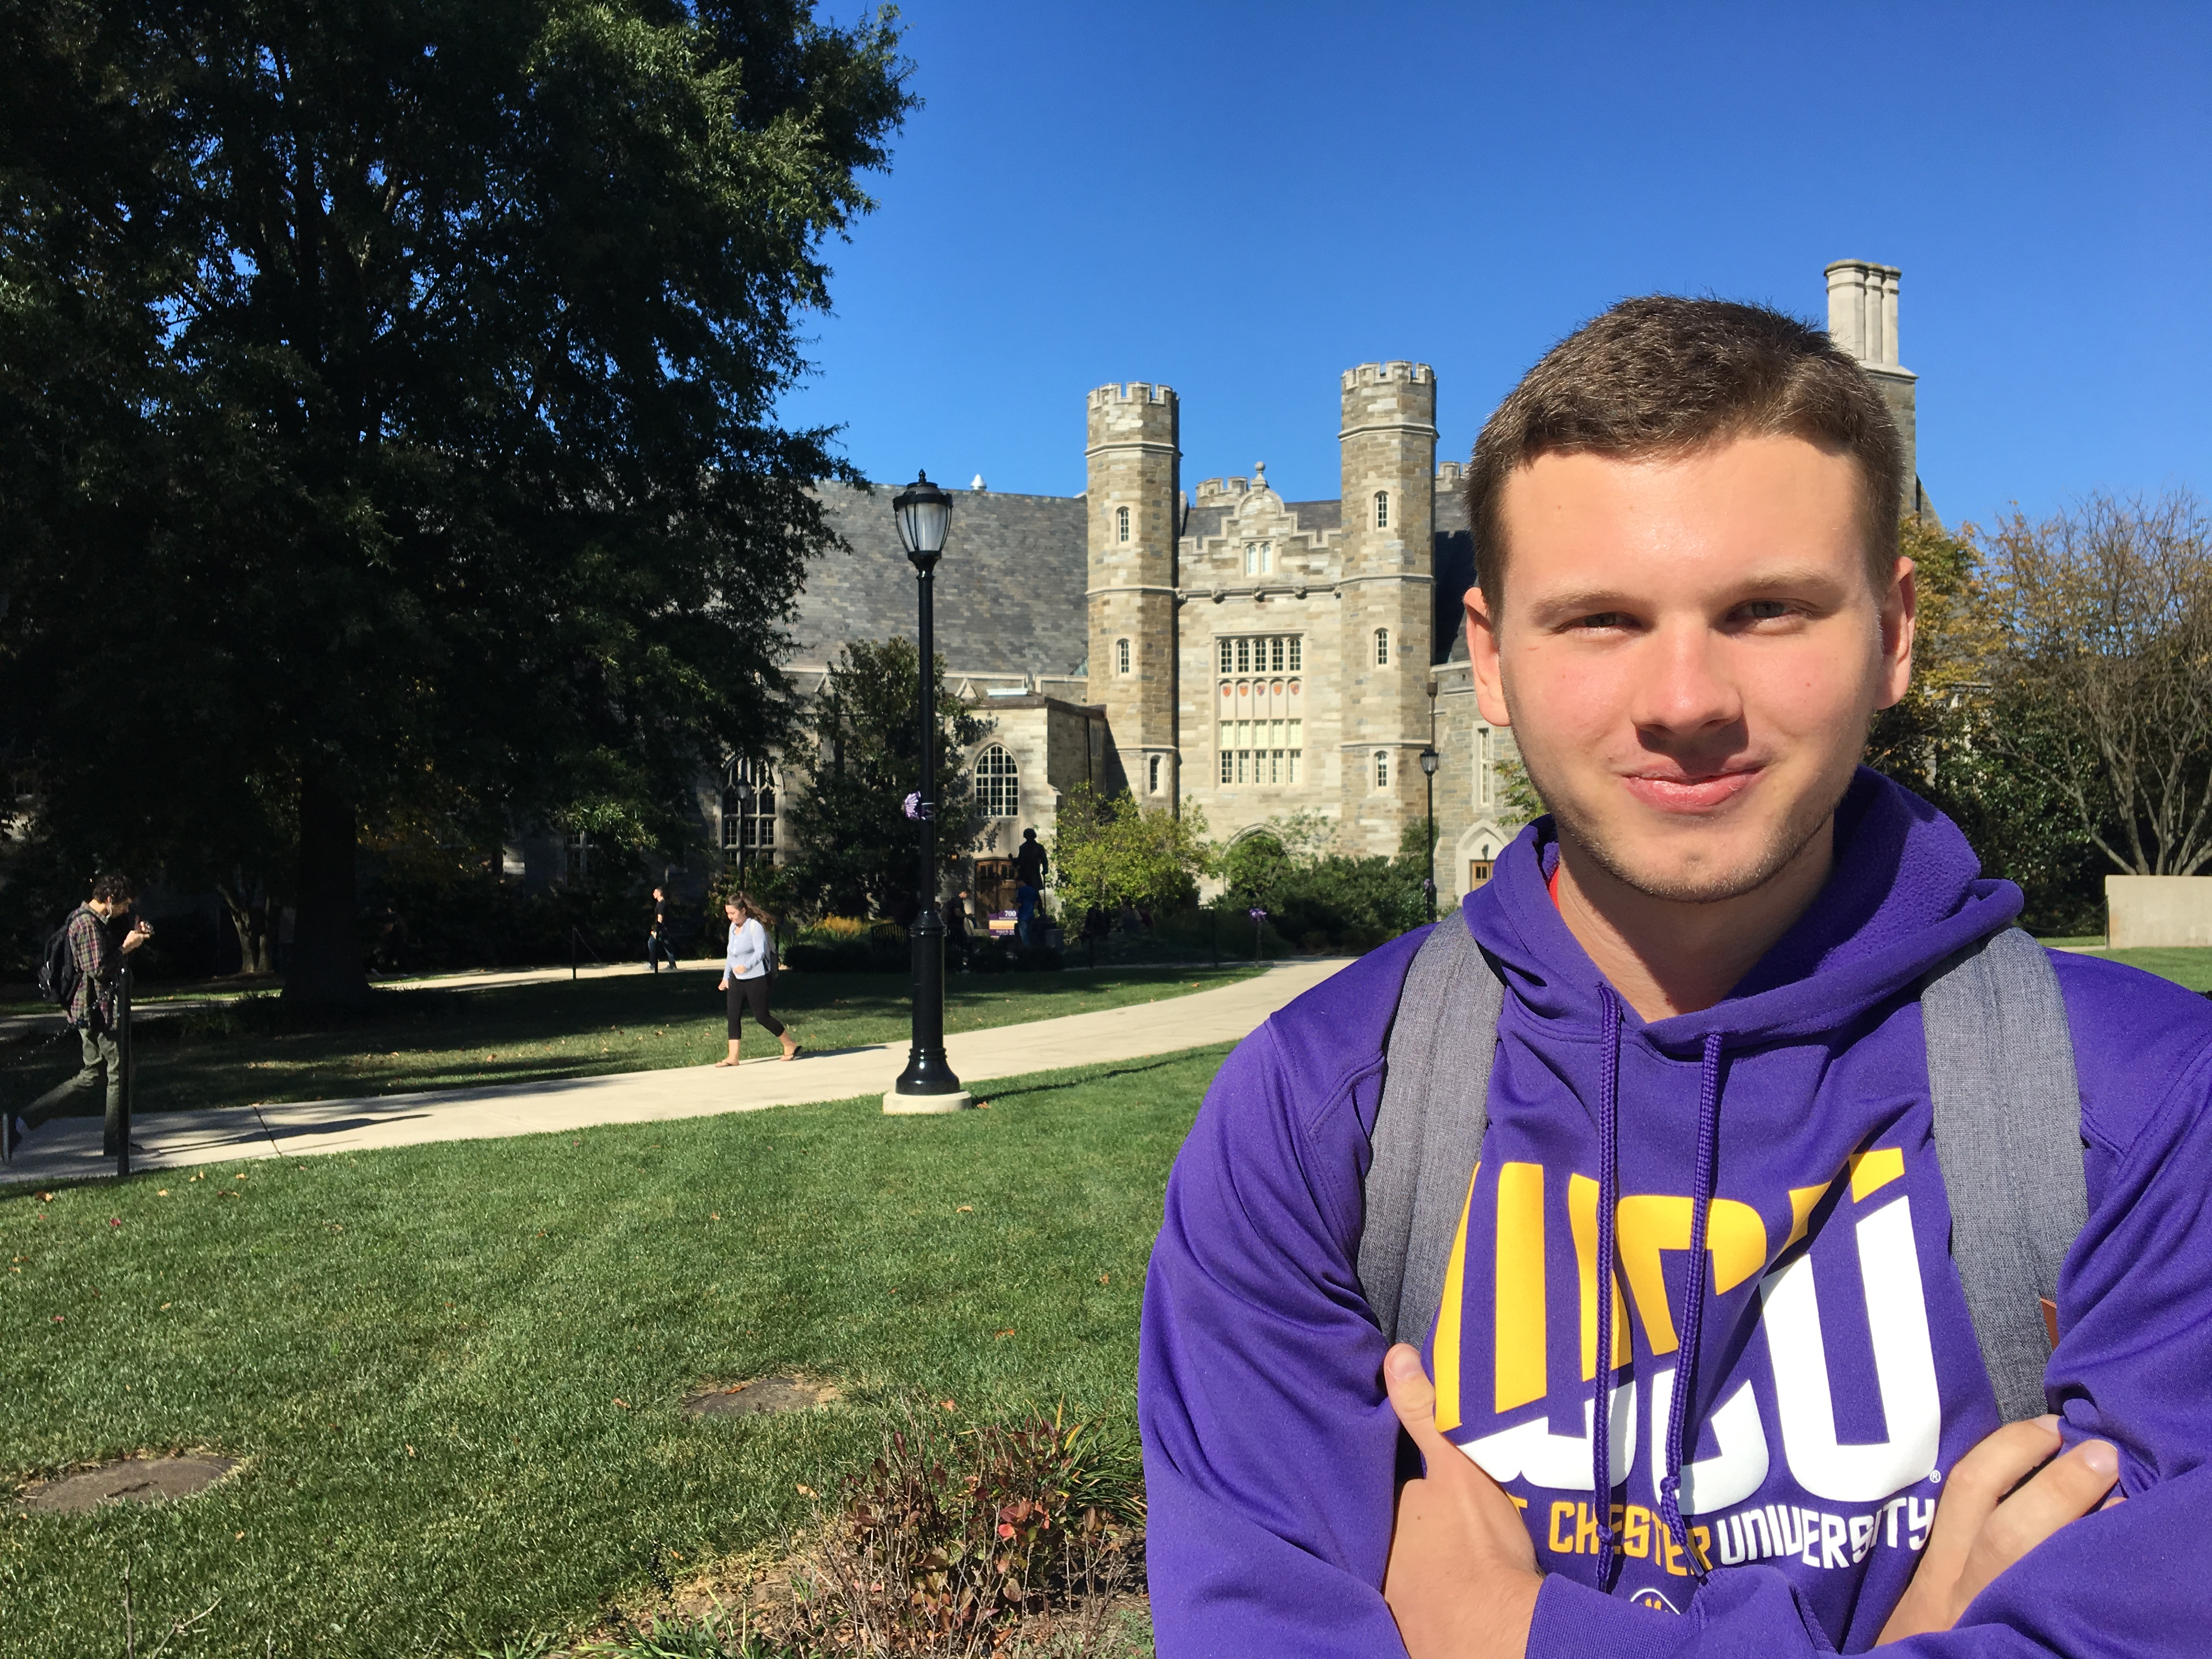 Senior Ryan Kutzler (quoted above) poses in front of Asplundh Hall while telling me about one of his favorite West Chester study spots.